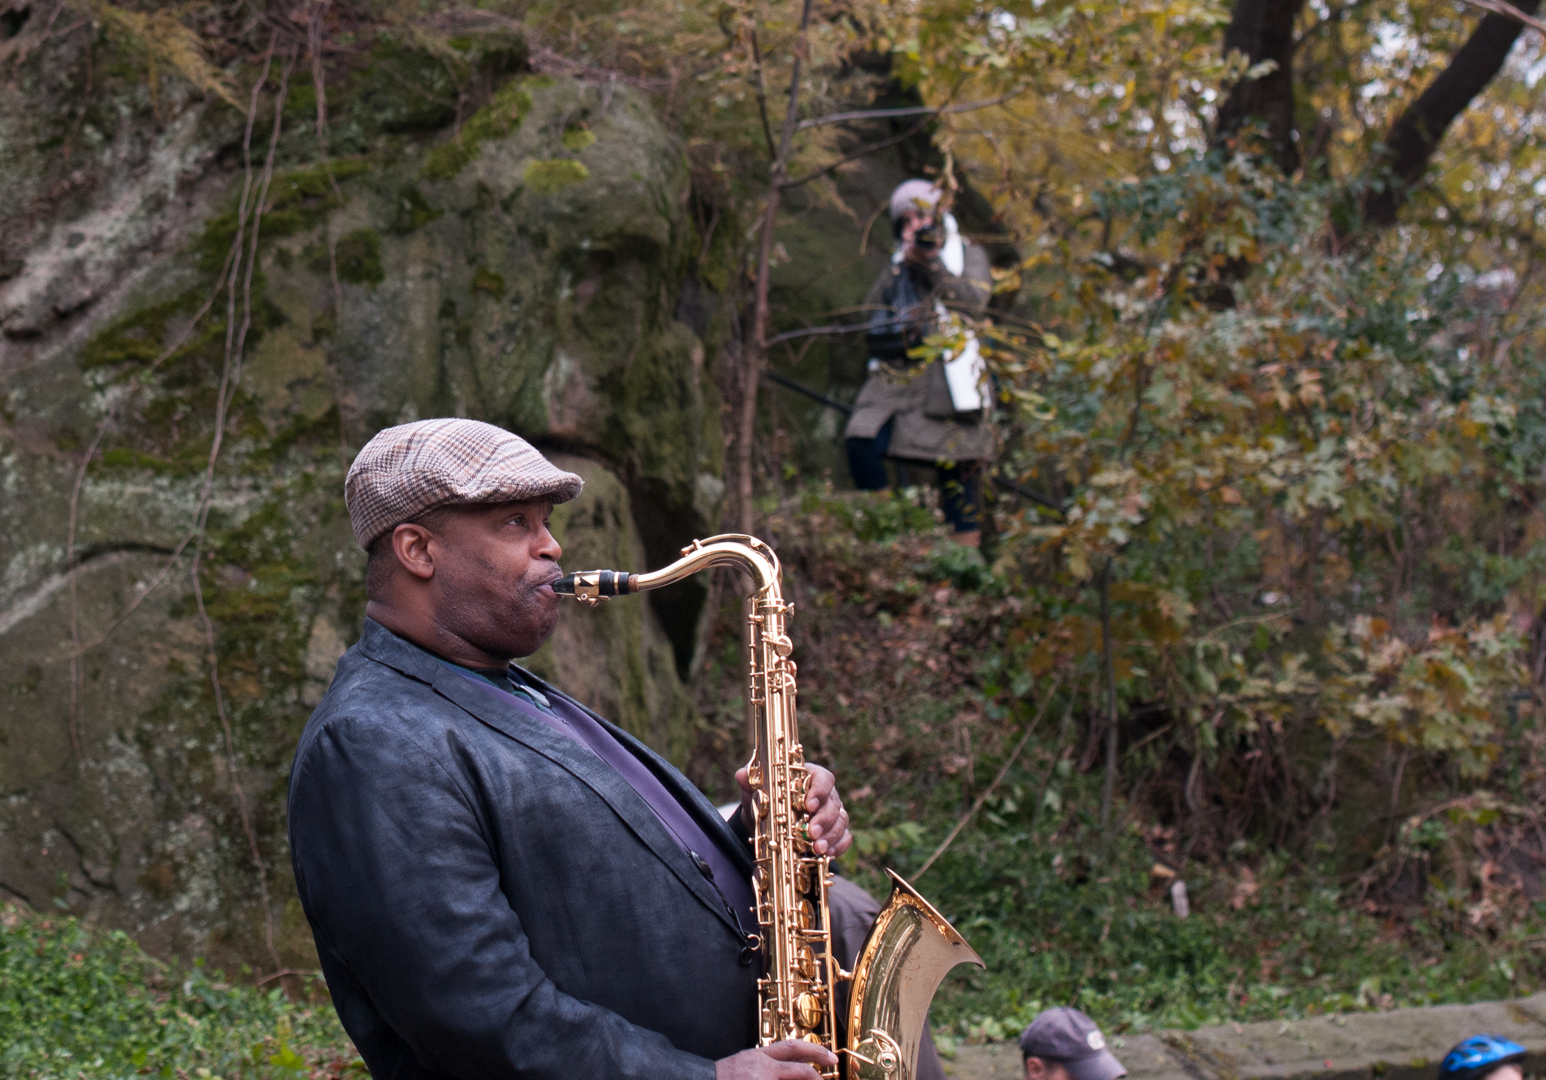 Ray Blue at Jazz and Colors in Central Park